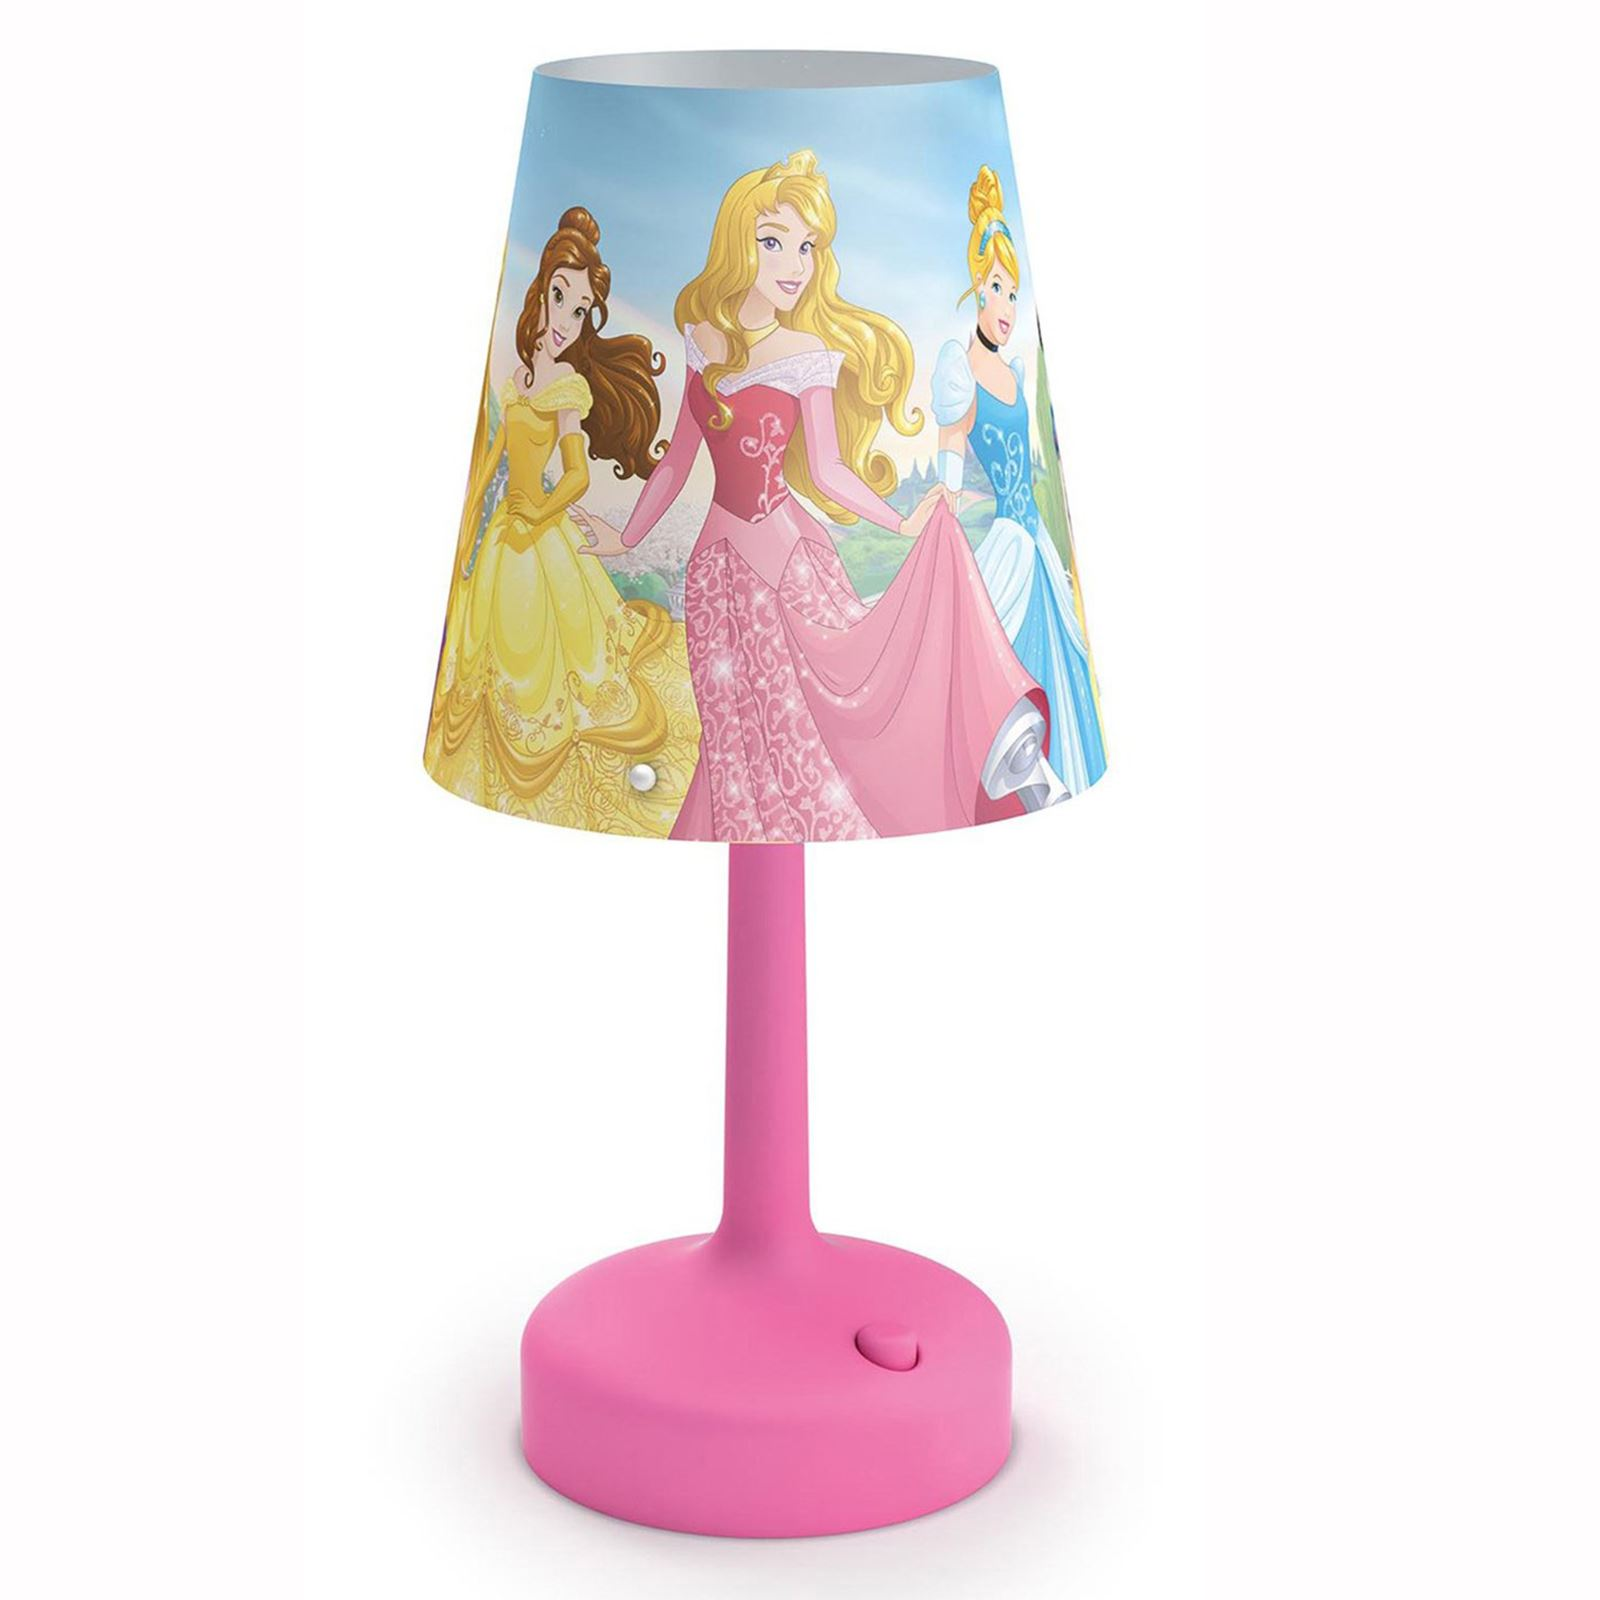 Kids Bedroom Accessories Should Be Available Home Interiors Kids - Lamps childrens bedrooms